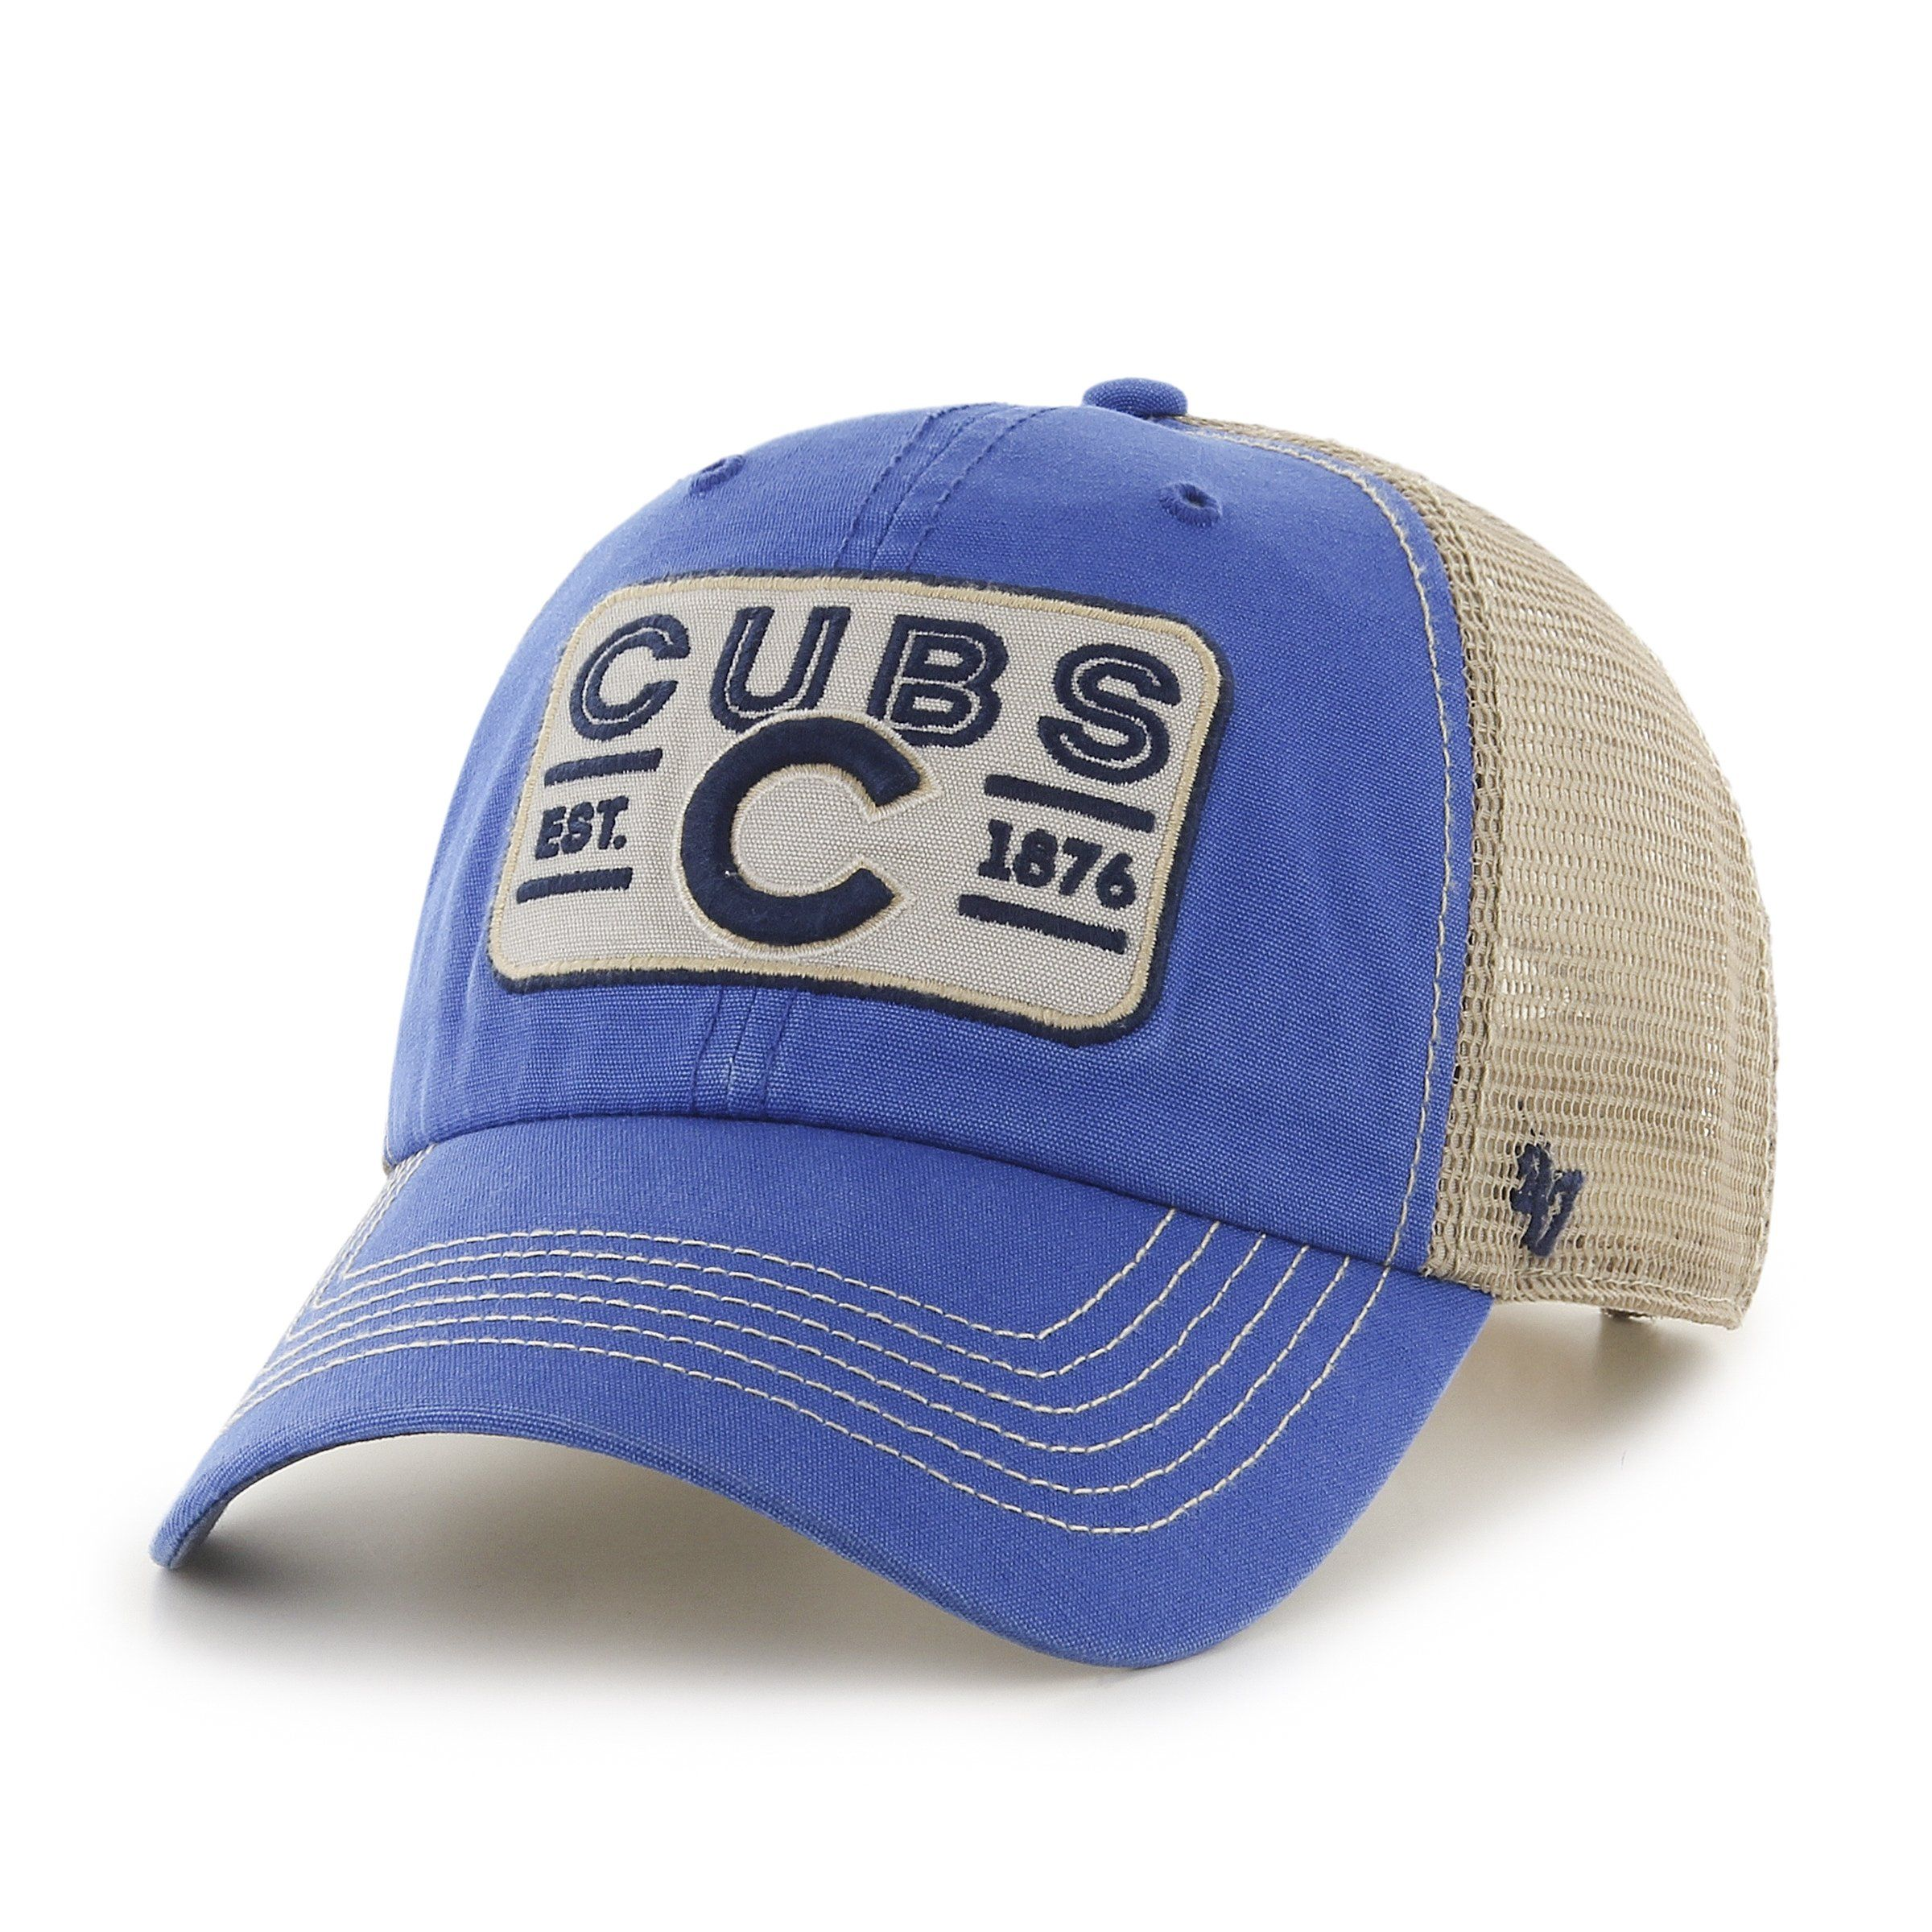 96764fd504c02 Made and Designed by 47 Brand. - Size is a One Size Fits All - Embroidered  on the Front is a Chicago Cubs Team Logo   the Print